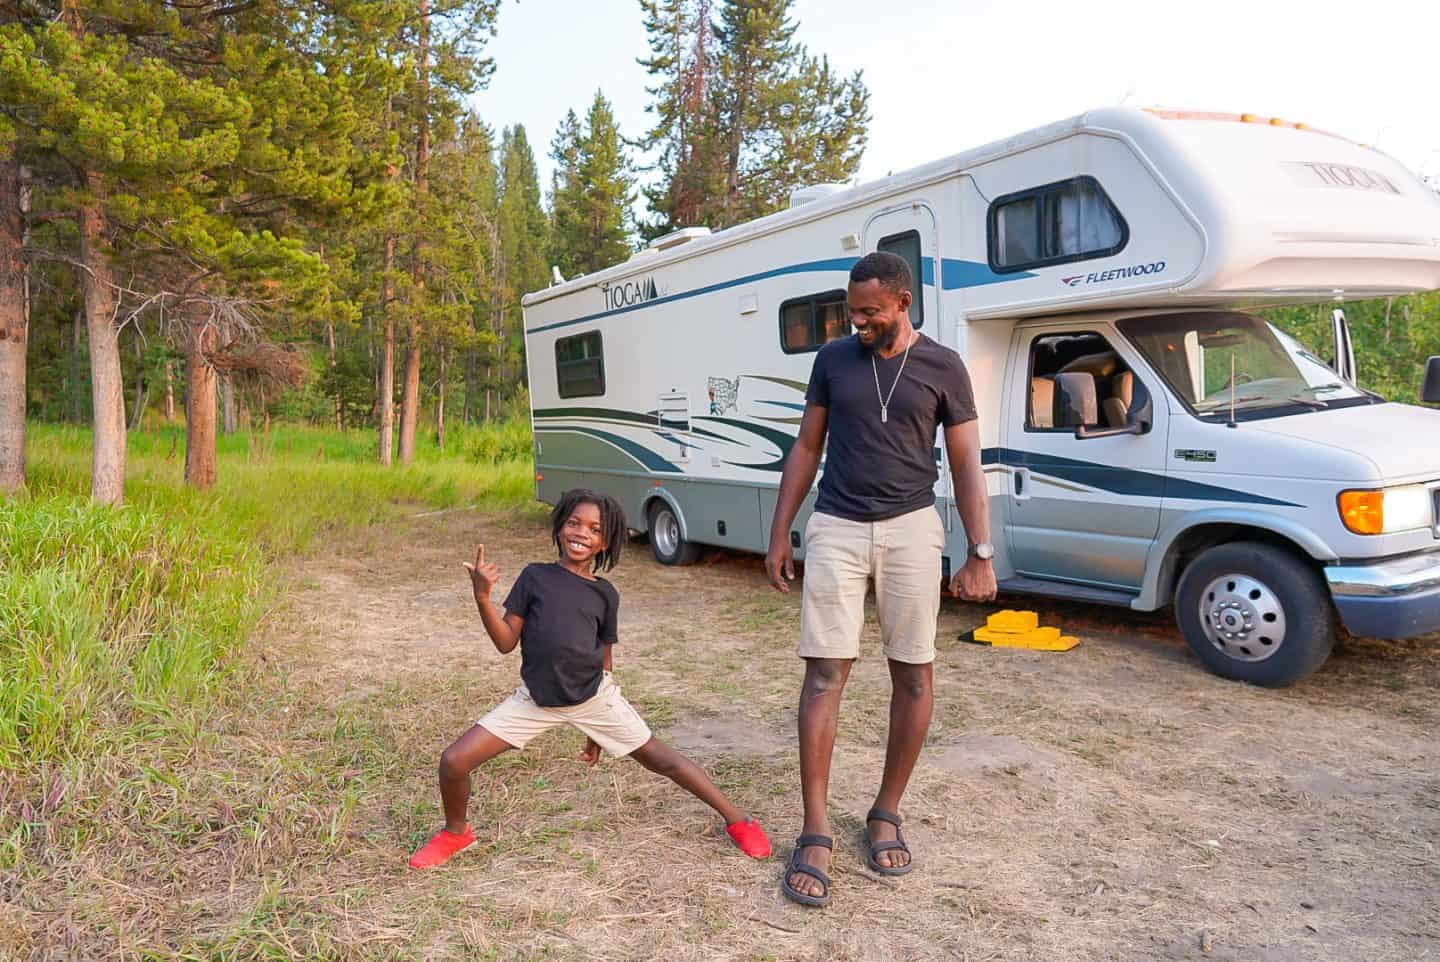 A Detailed List Of The Best RV Apps for Travel, Entertainment, & More